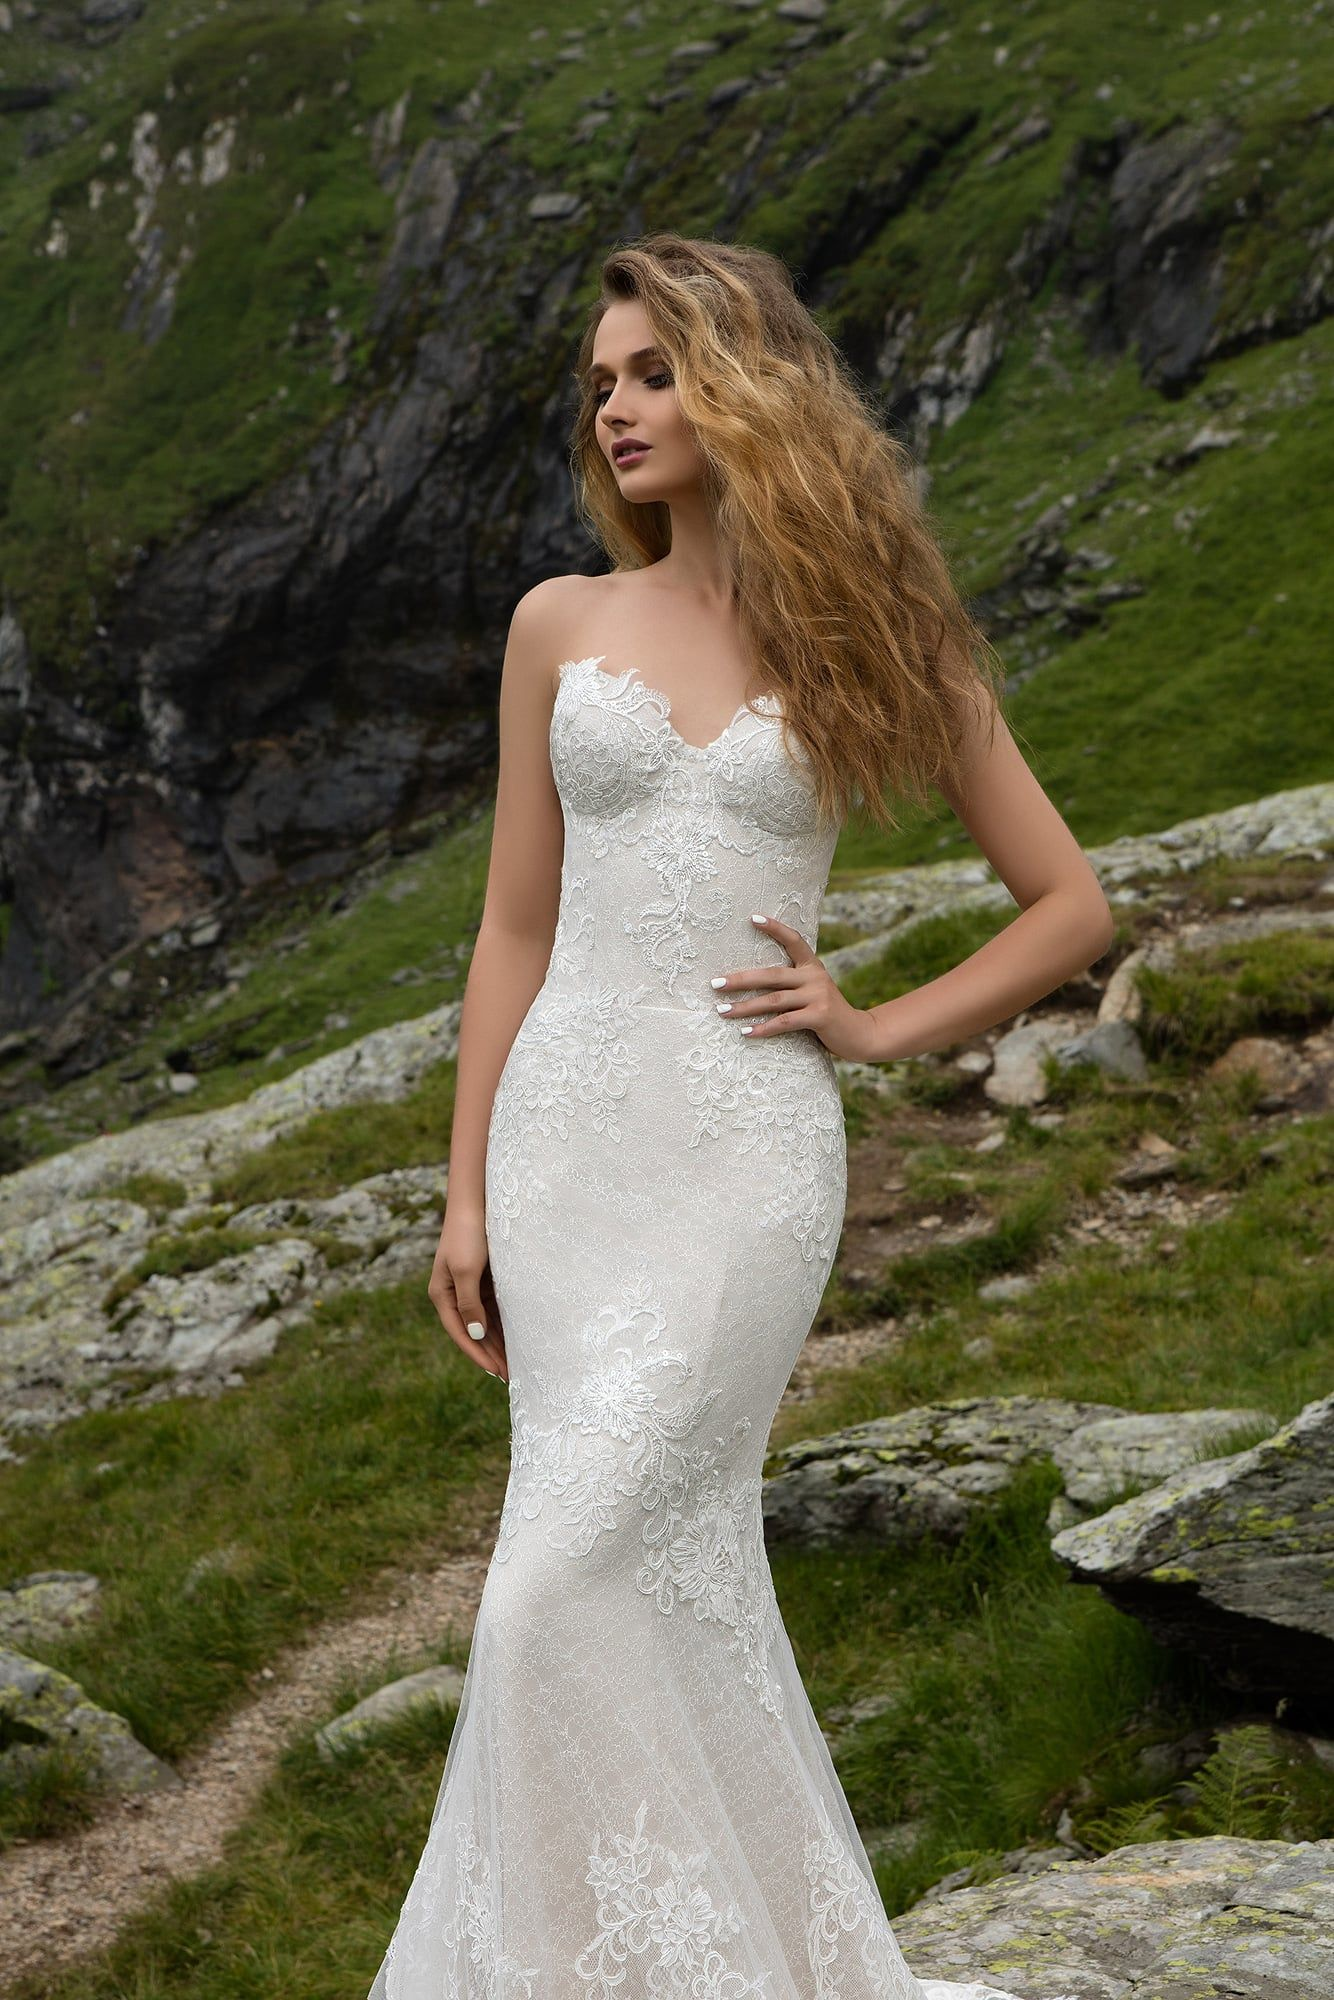 European Made Wedding Dress Rumba From Italy Price 1400 00 Only In Charme Gaby Bridal Gown Bou Affordable Wedding Gown Wedding Dresses Beautiful Wedding Gowns